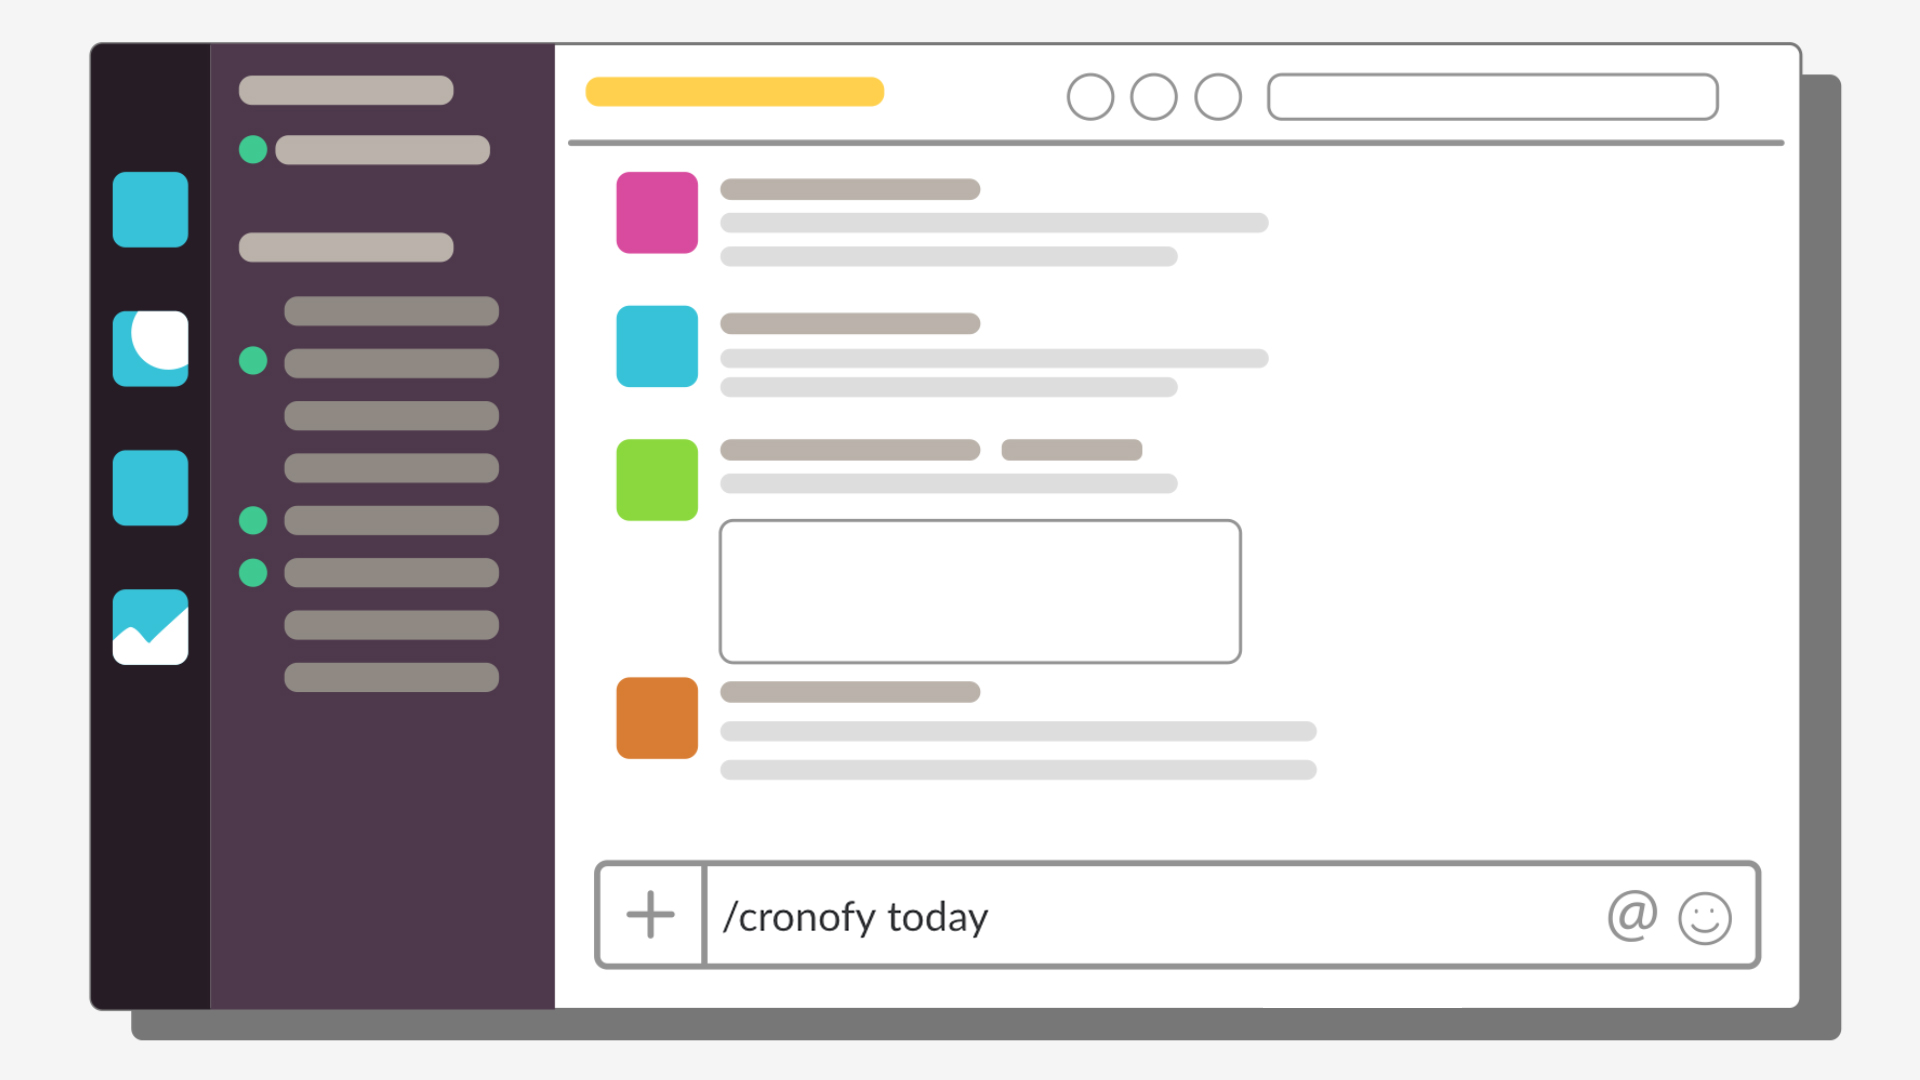 See a list of your upcoming meetings in Slack.